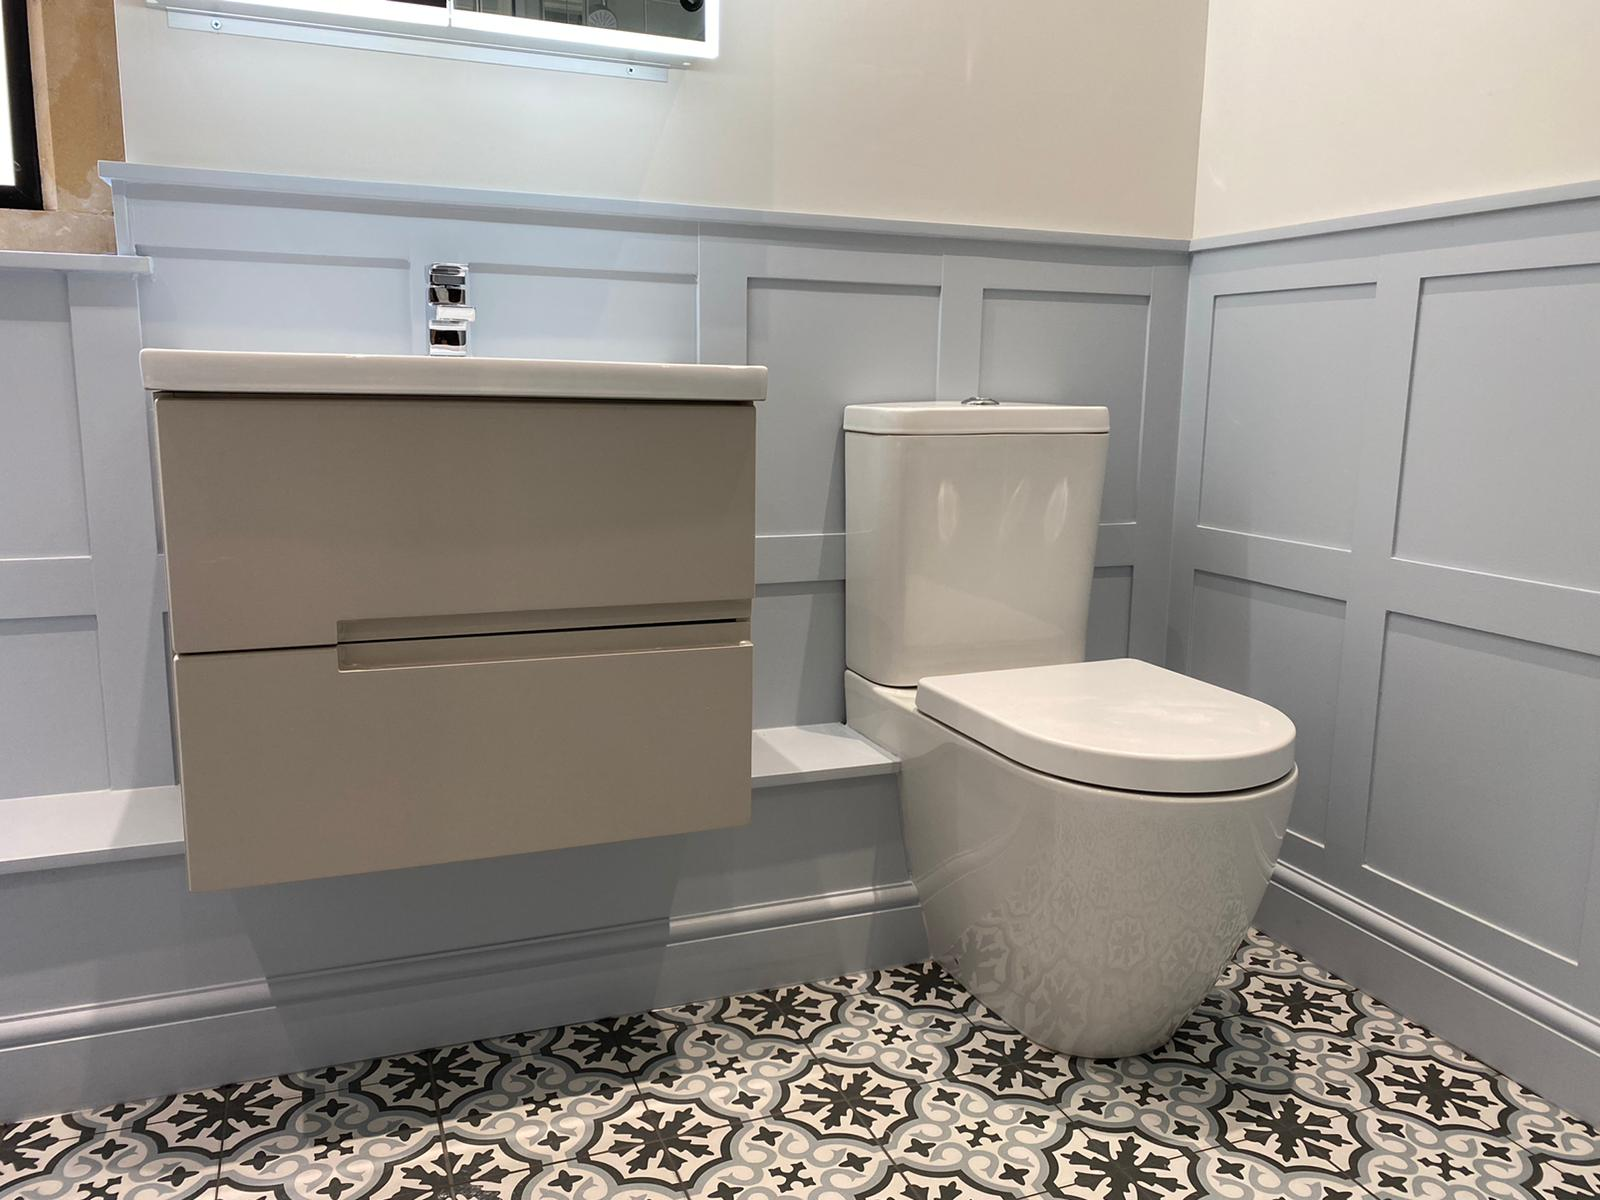 Bathroom WC and Sink